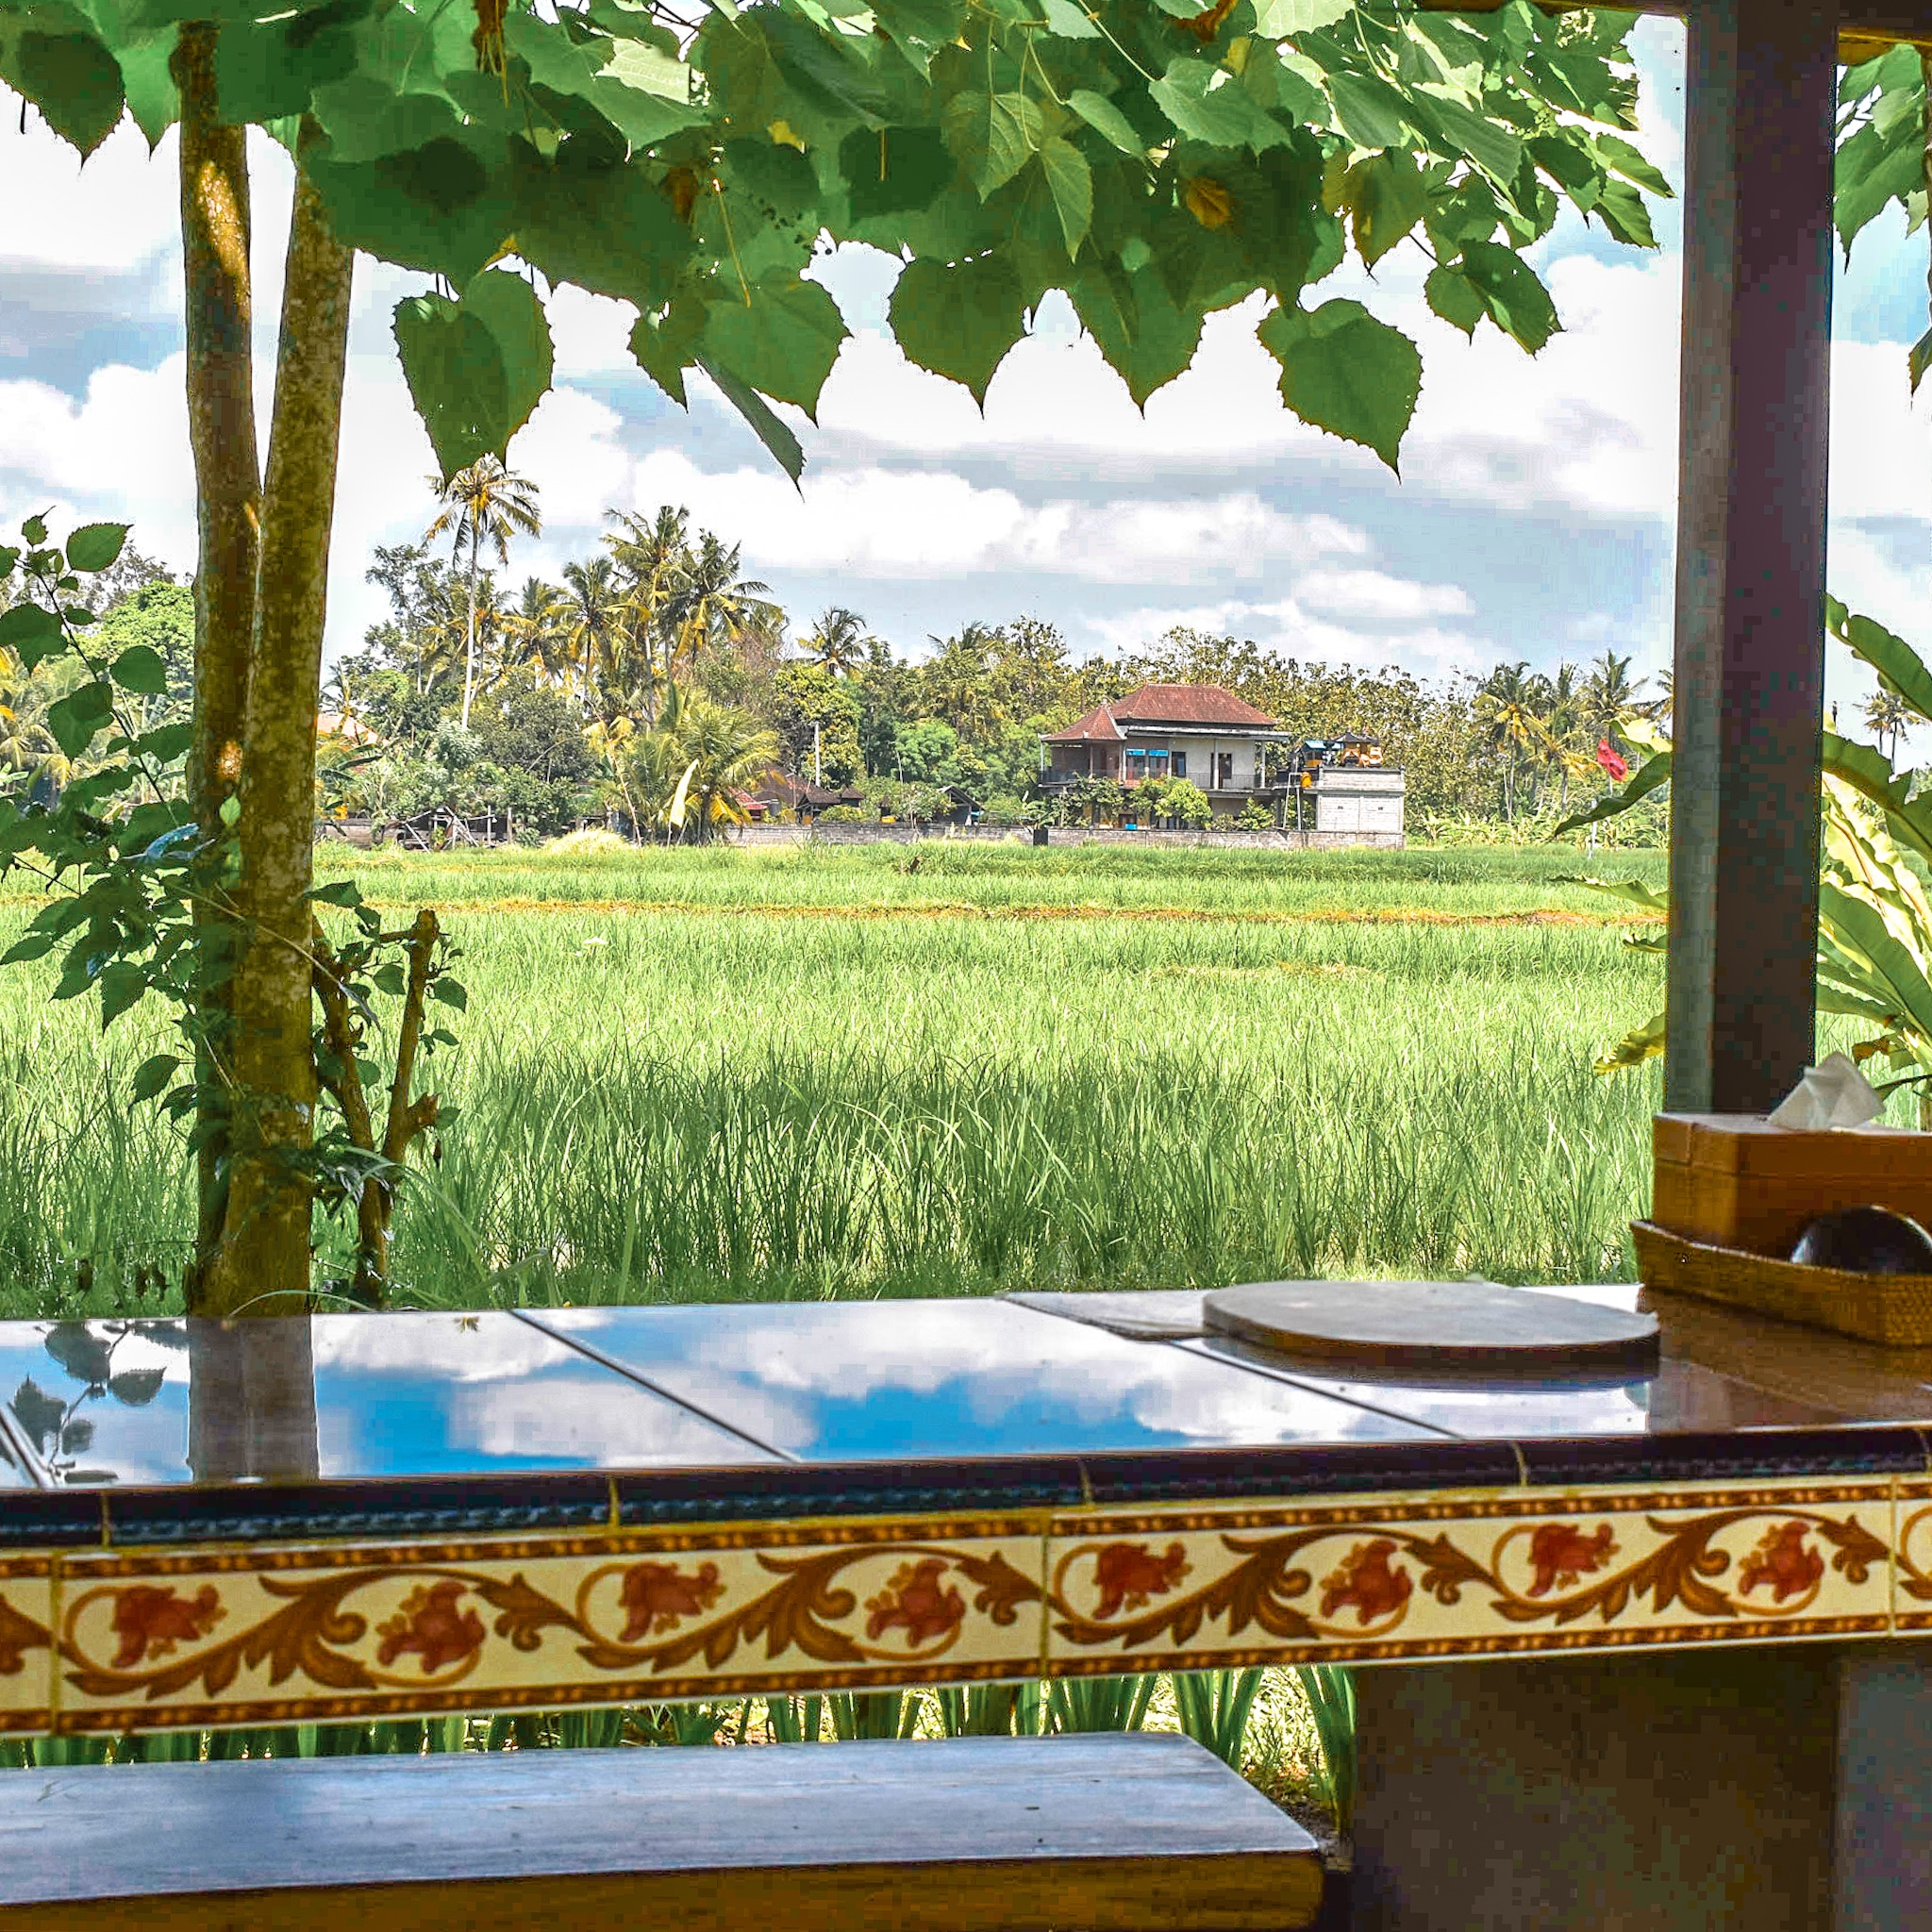 Coffee Plantation Seating Overlooks the Rice Fields in Bali